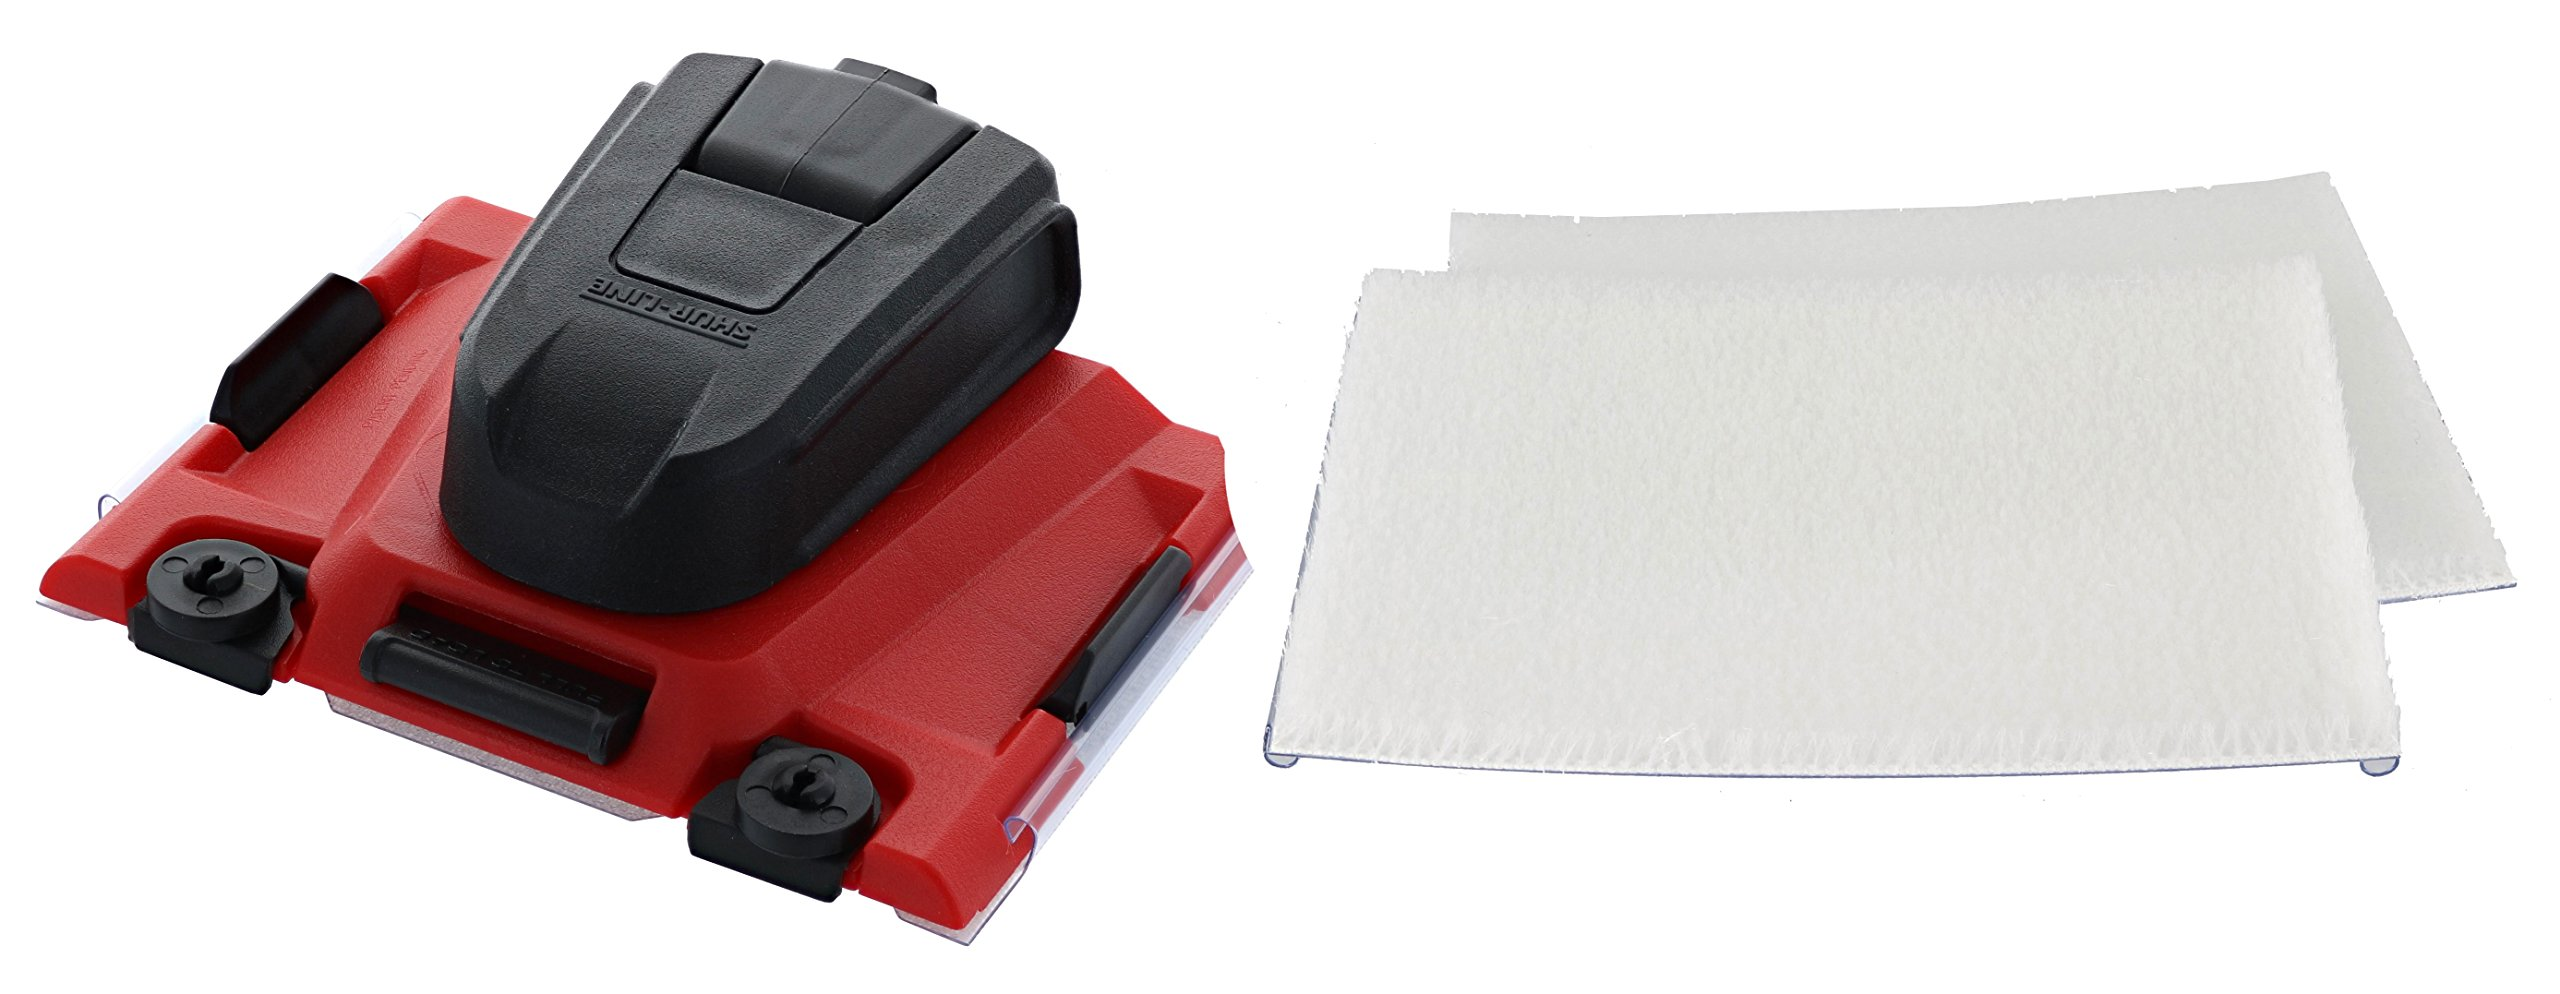 Shur-Line 2006561 Paint Edger Pro with Two Pack of 2001044 Painter's Pad Refills by SHUR-LINE